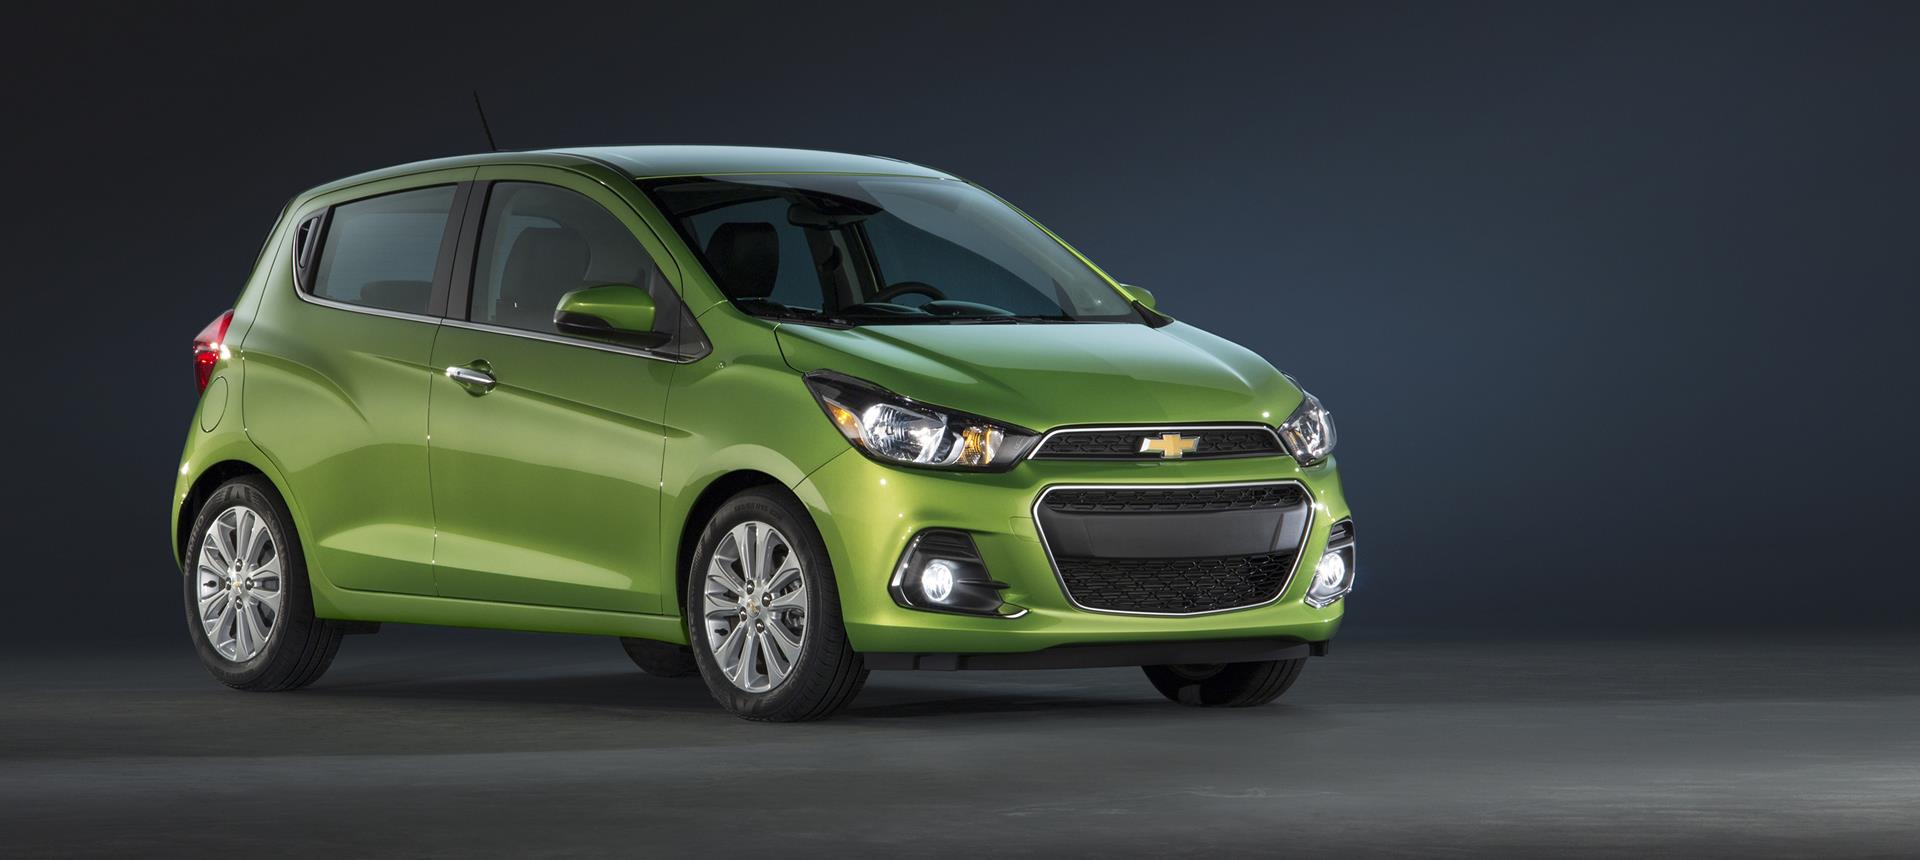 2016 Chevrolet Spark Technical And Mechanical Specifications Matiz 2009 Manual